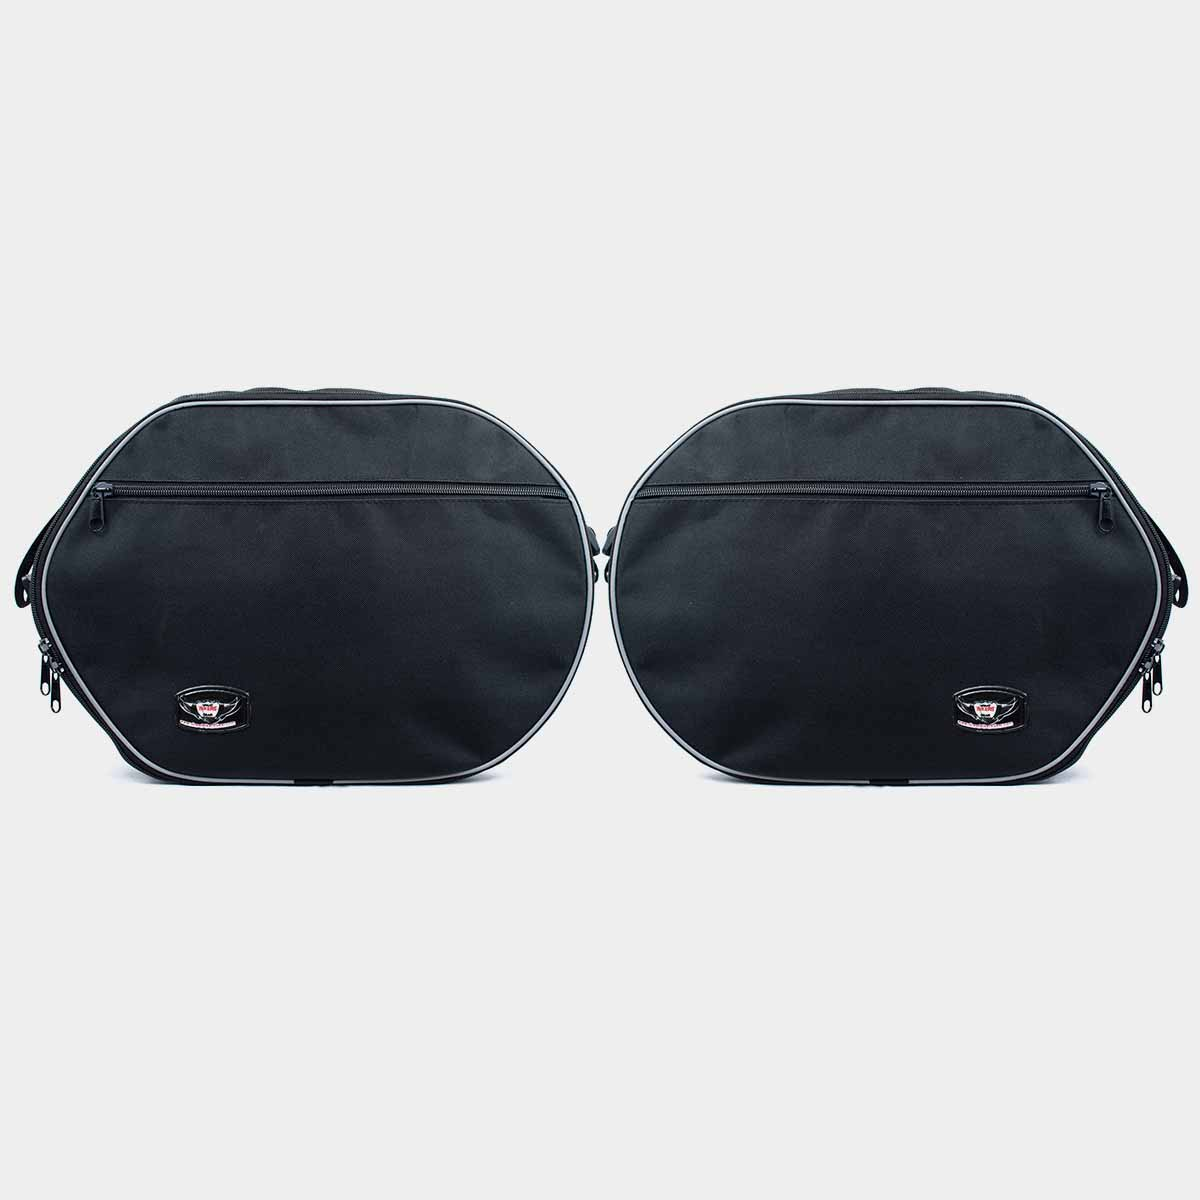 PANNIER LINER BAGS INNER BAGS LUGGAGE BASG FOR YAMAHA TENERE XT1200Z XT1200